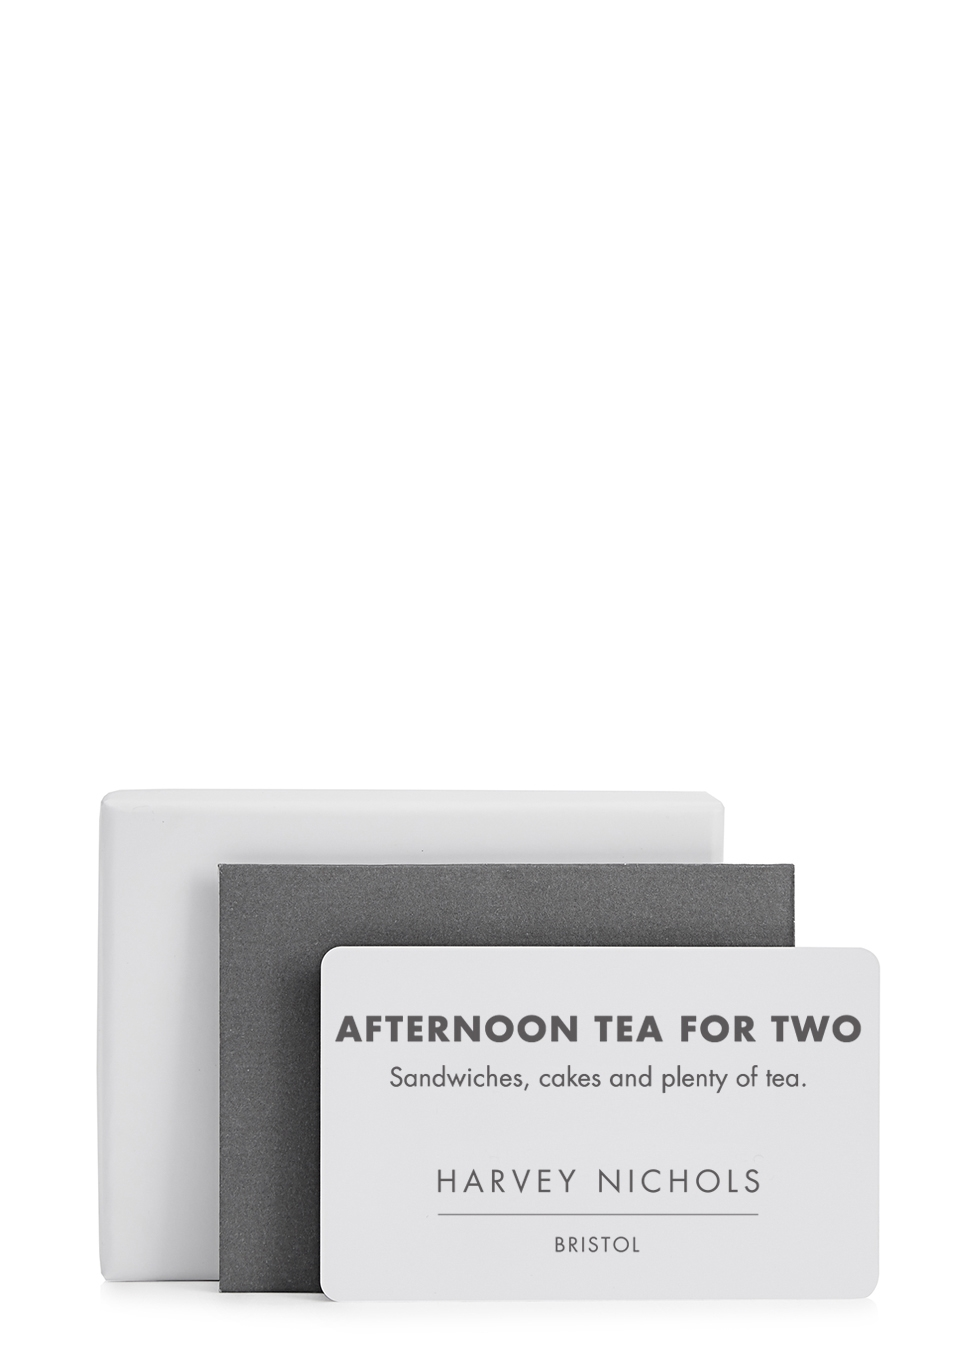 Afternoon Tea For Two - Bristol - Gift Experiences